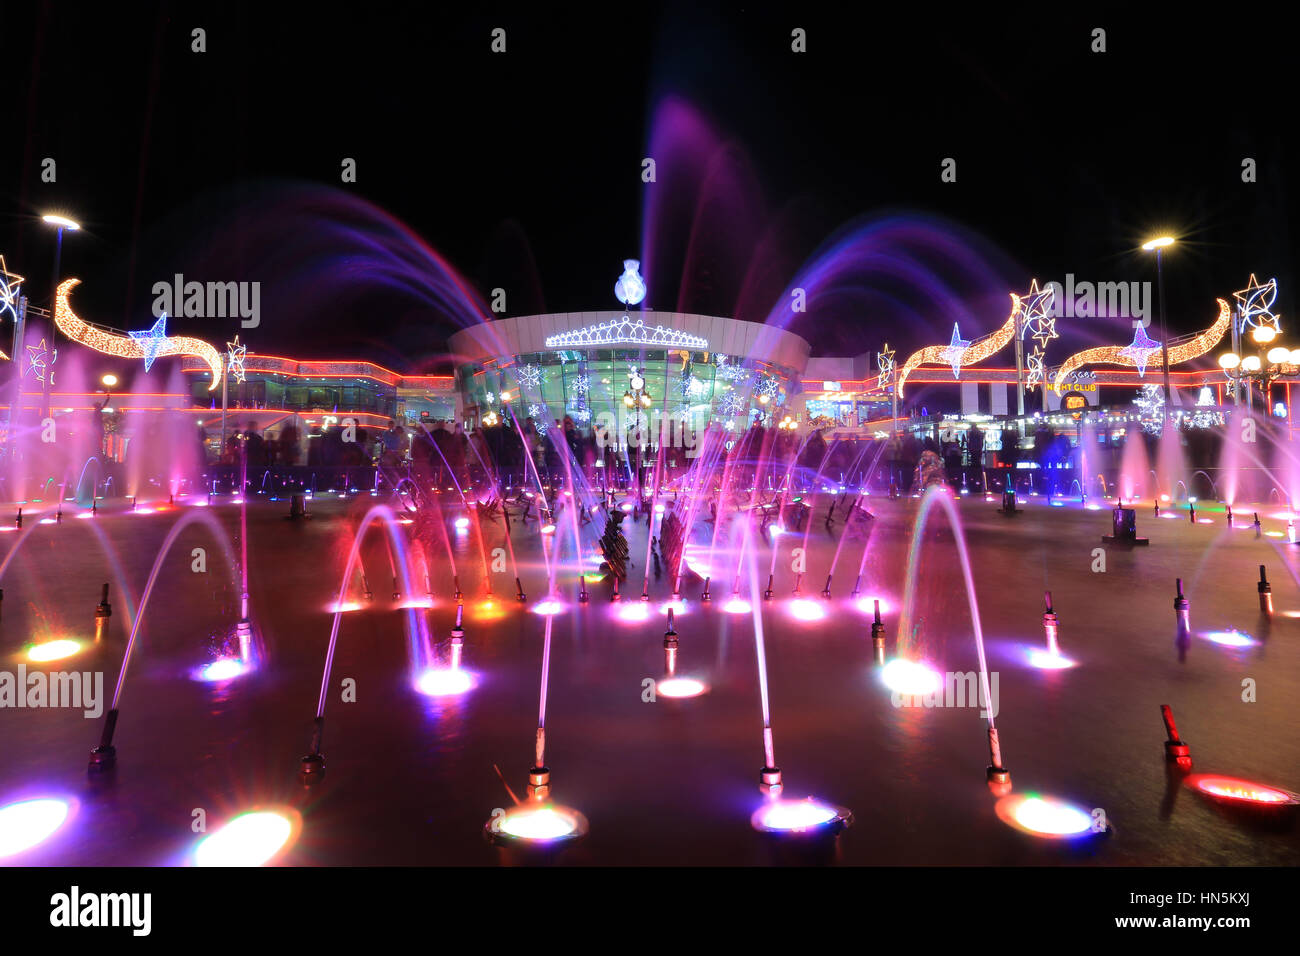 Colorful fountain in night at Soho square in Sharm El Sheikh - Stock Image